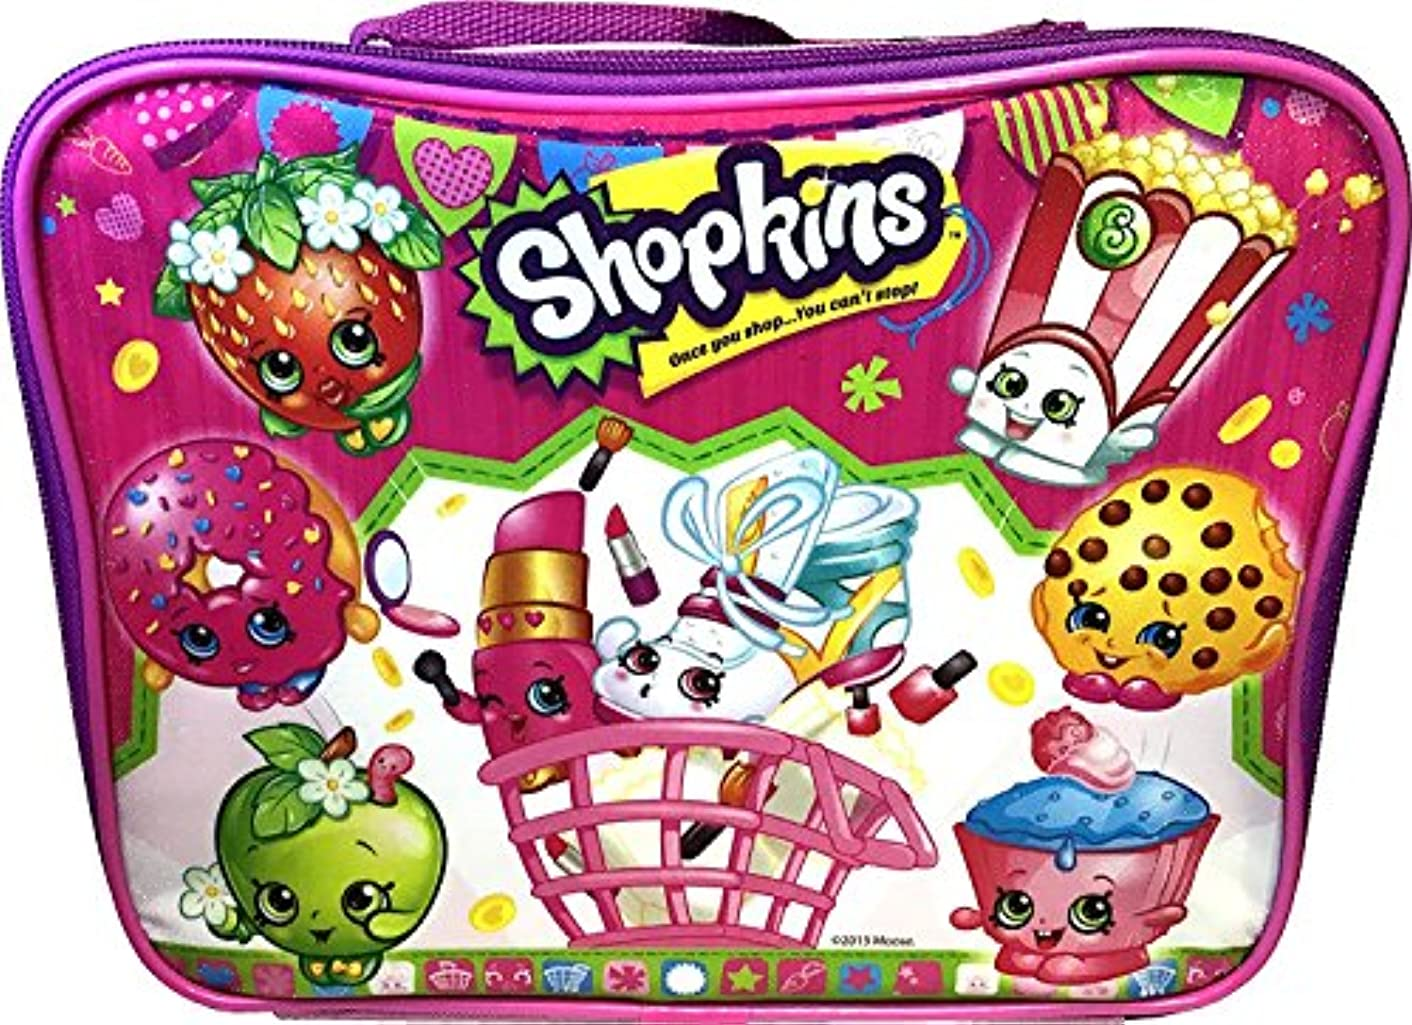 Shopkins Rectangular Lunch Kit Bag, Pink, 9.5x7.5x3.5 Inches